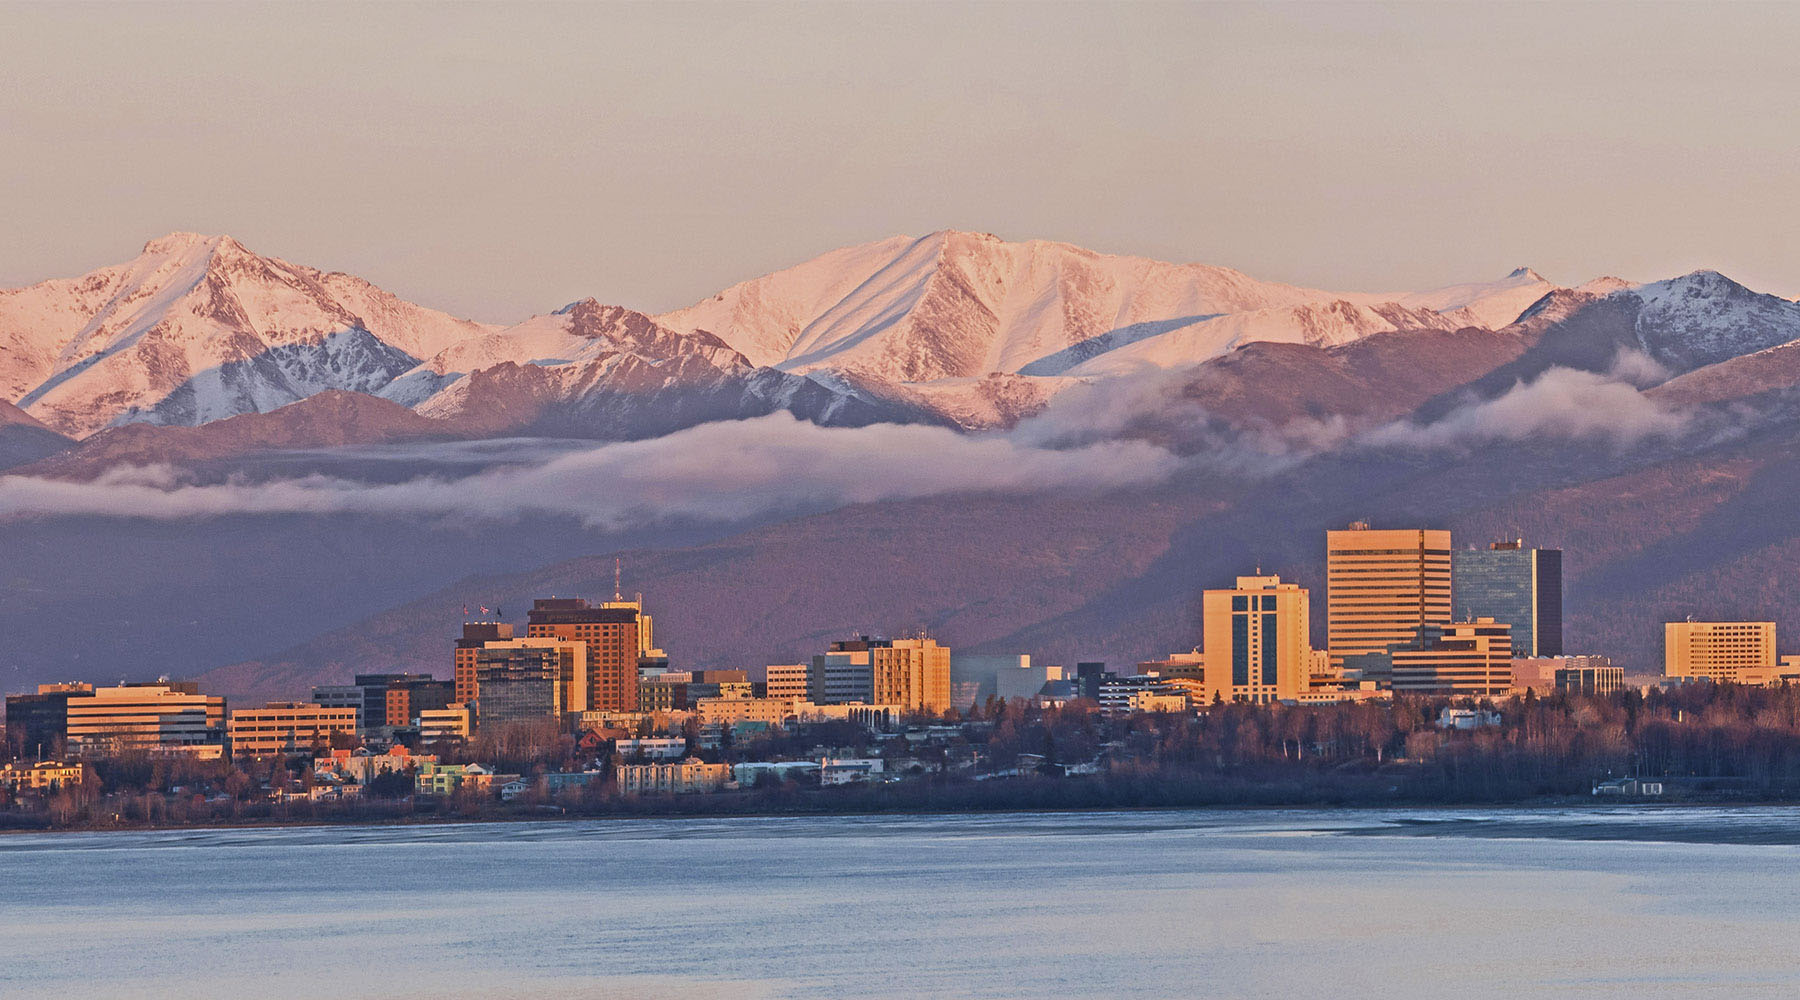 13-NIGHT CROSSING VOYAGE & 6-NIGHT POST ALASKA PKG 3A